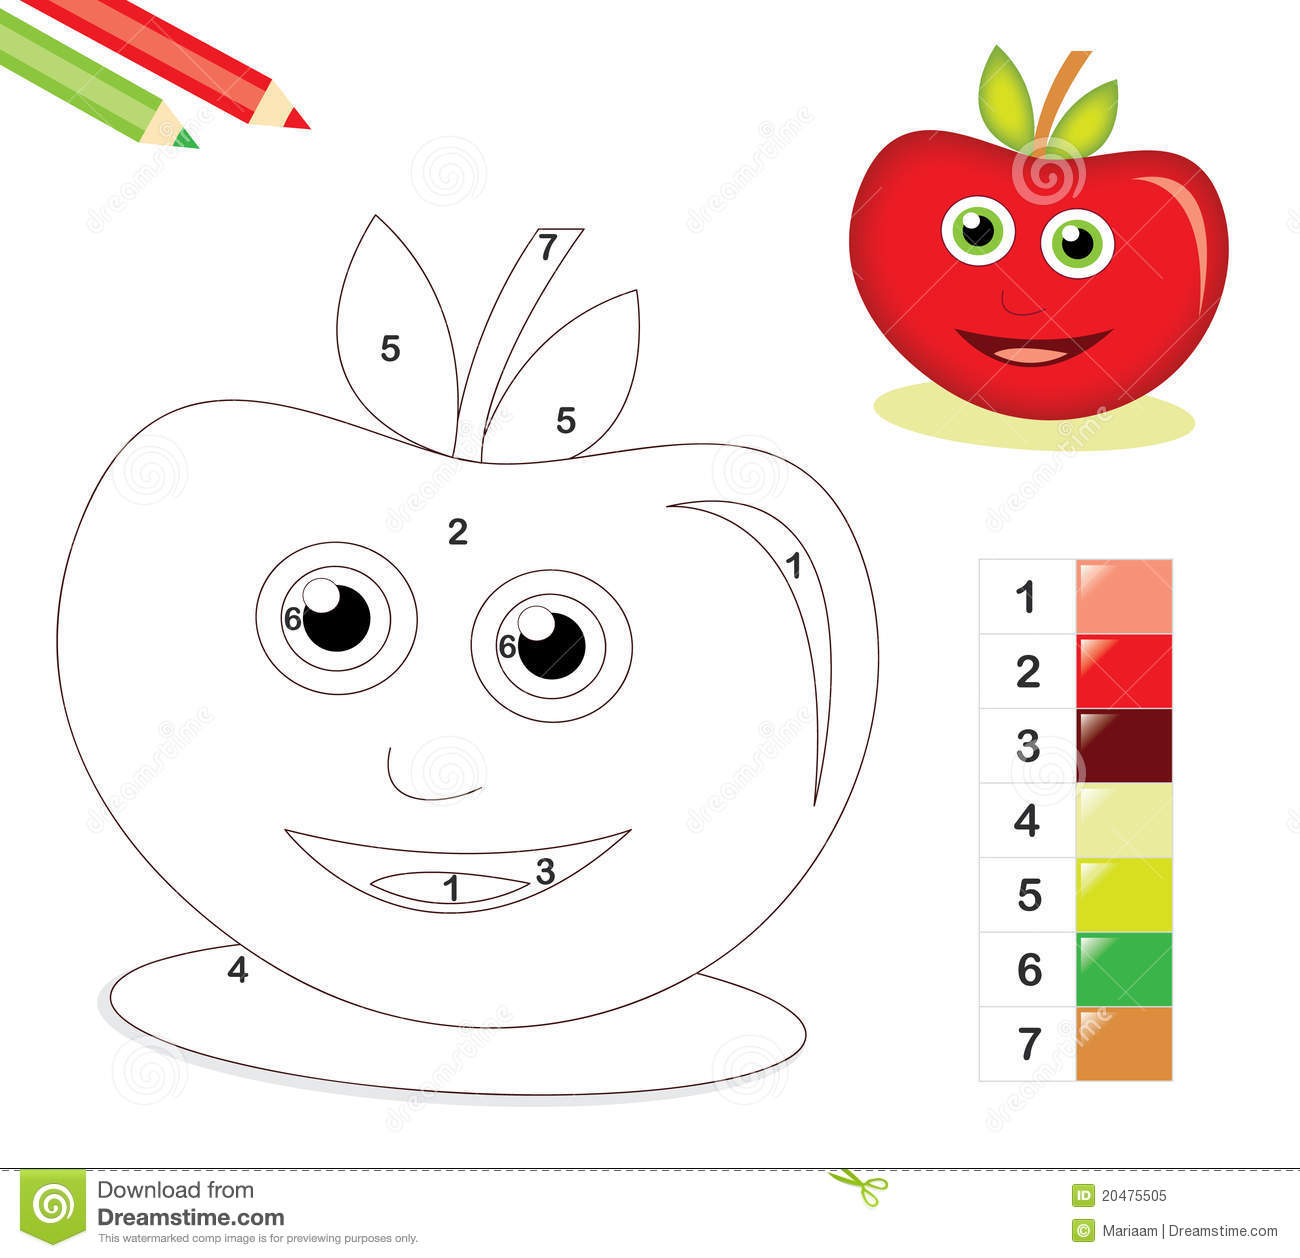 color by number game with apple royalty free stock photo